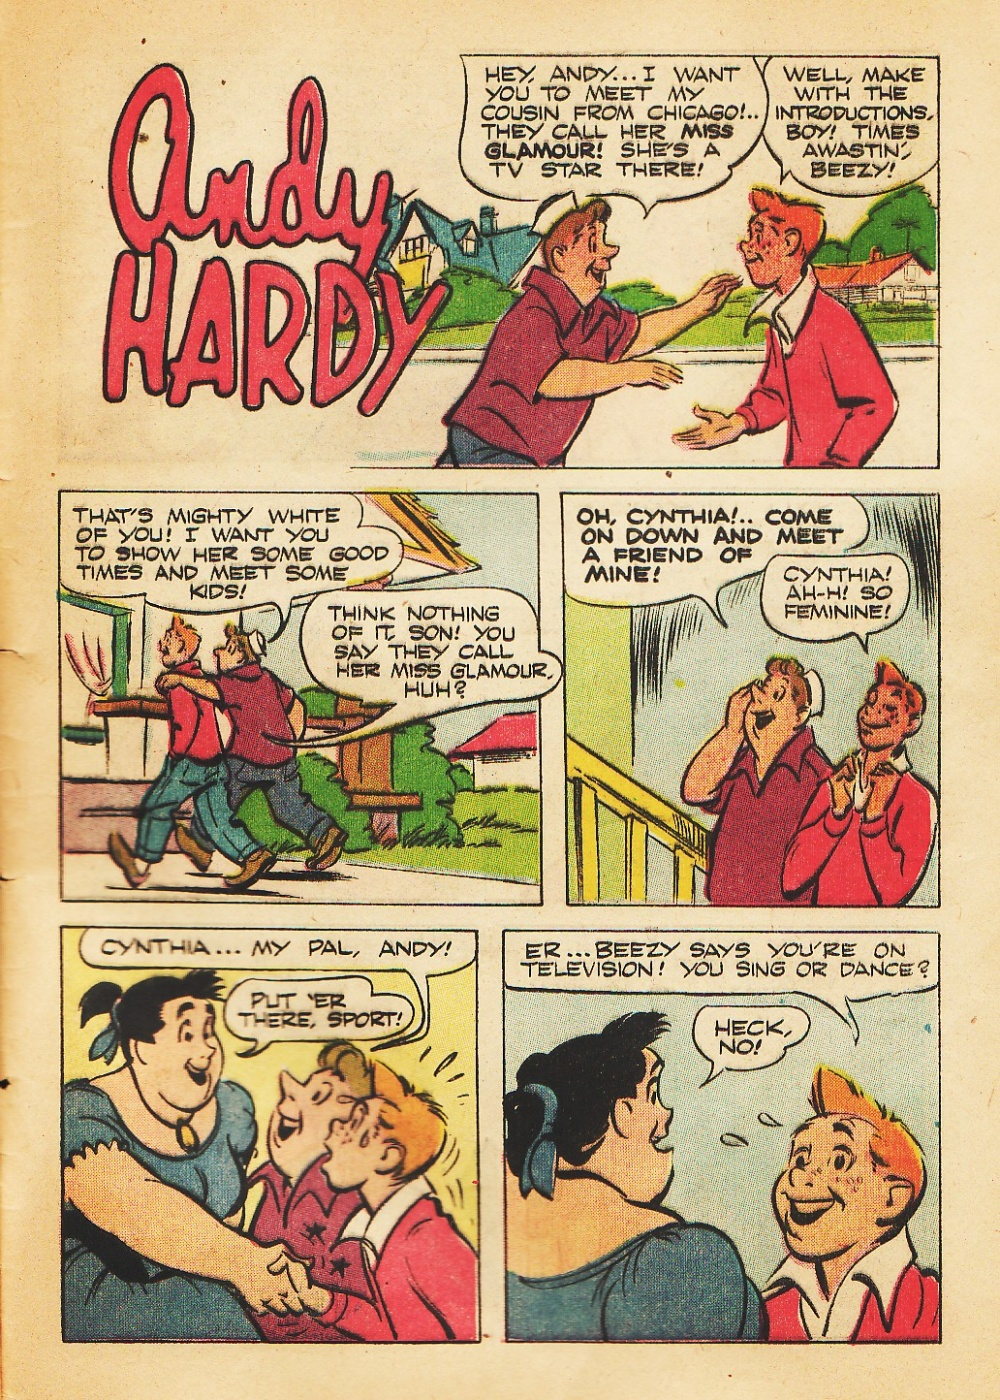 Andy-Hardy-Comic-Strips (b) (33)